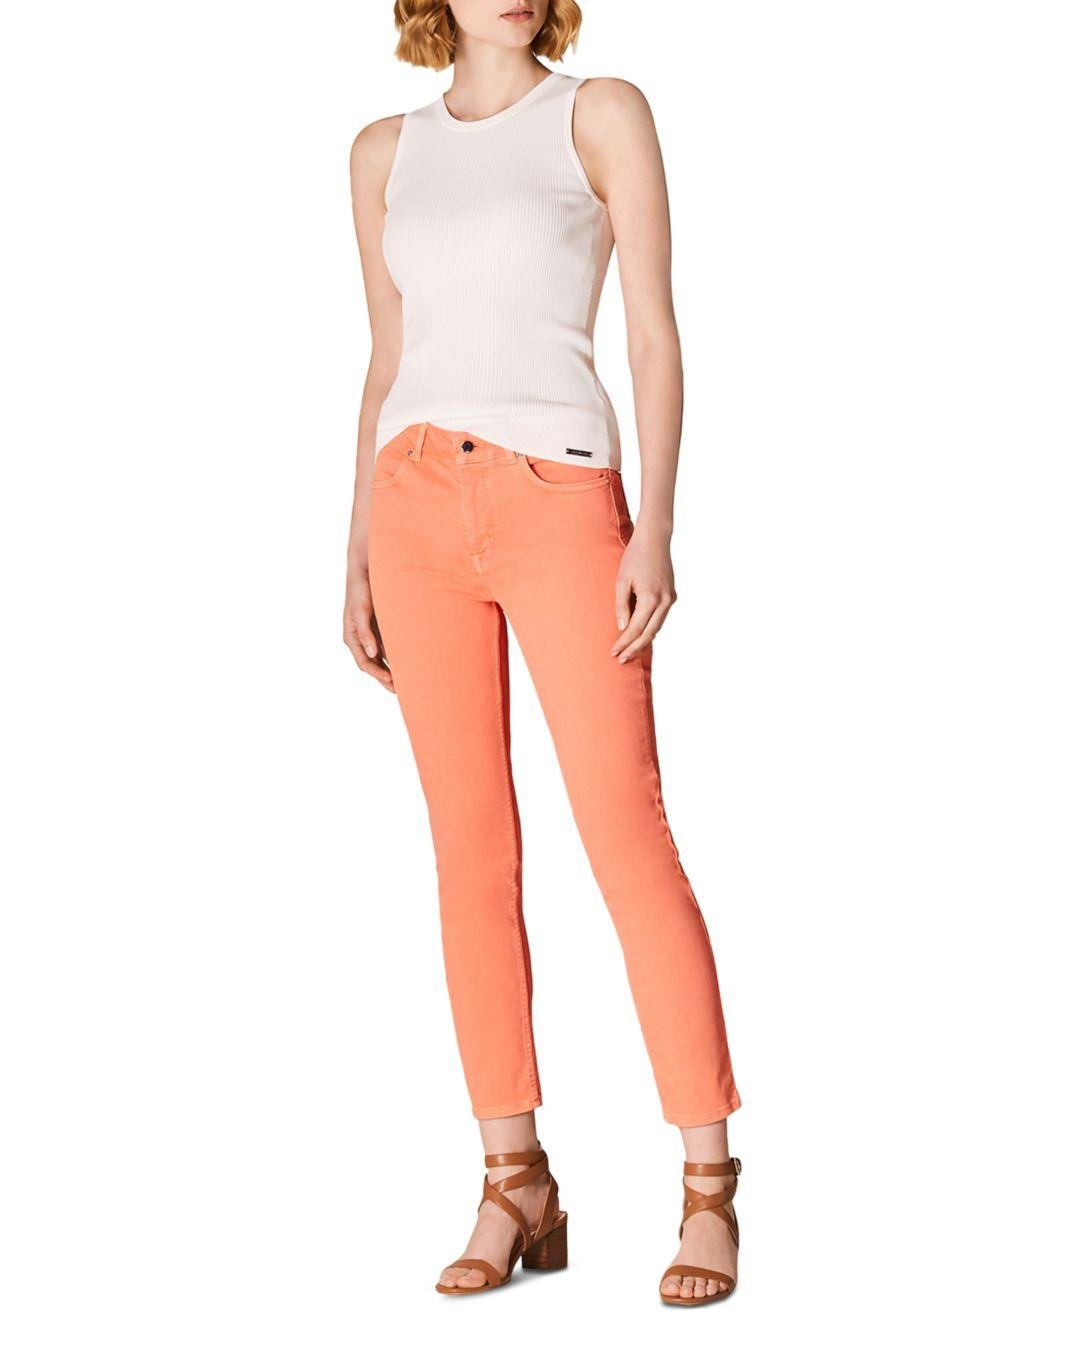 8d88680532 ... Orange Cropped Skinny Jeans In Coral - Lyst. View fullscreen